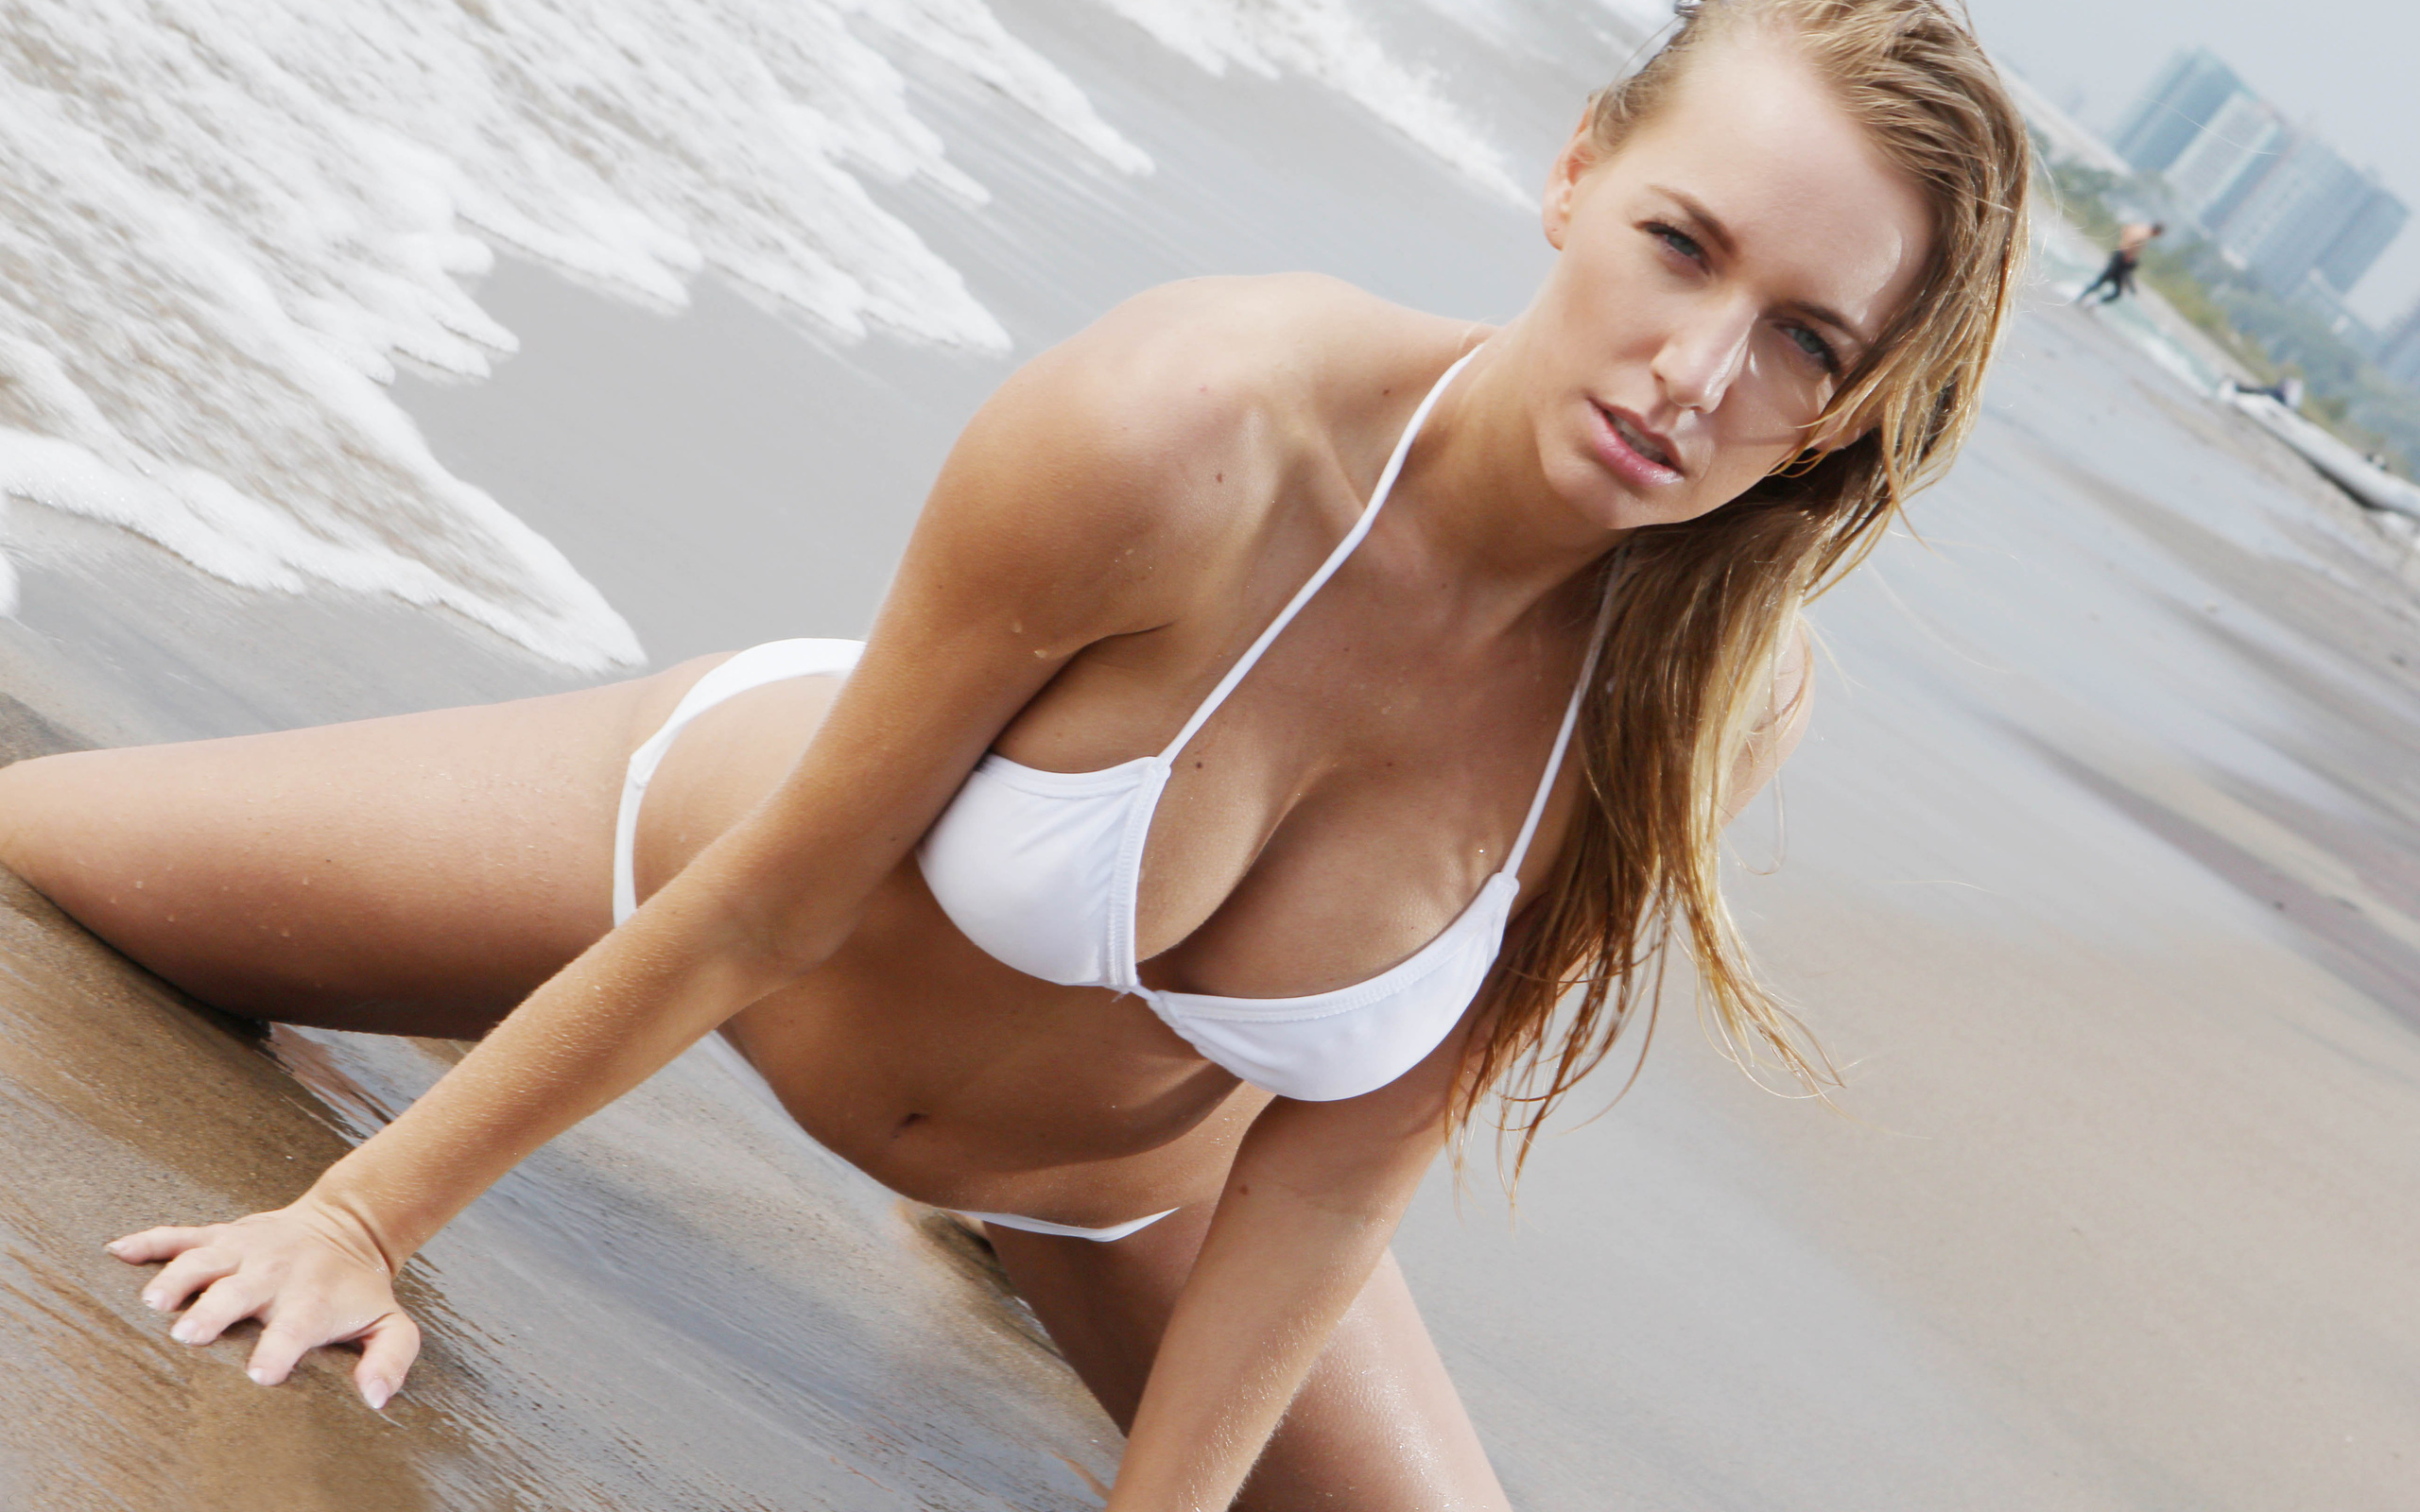 blonde-in-white-bikini-nude-aquarius